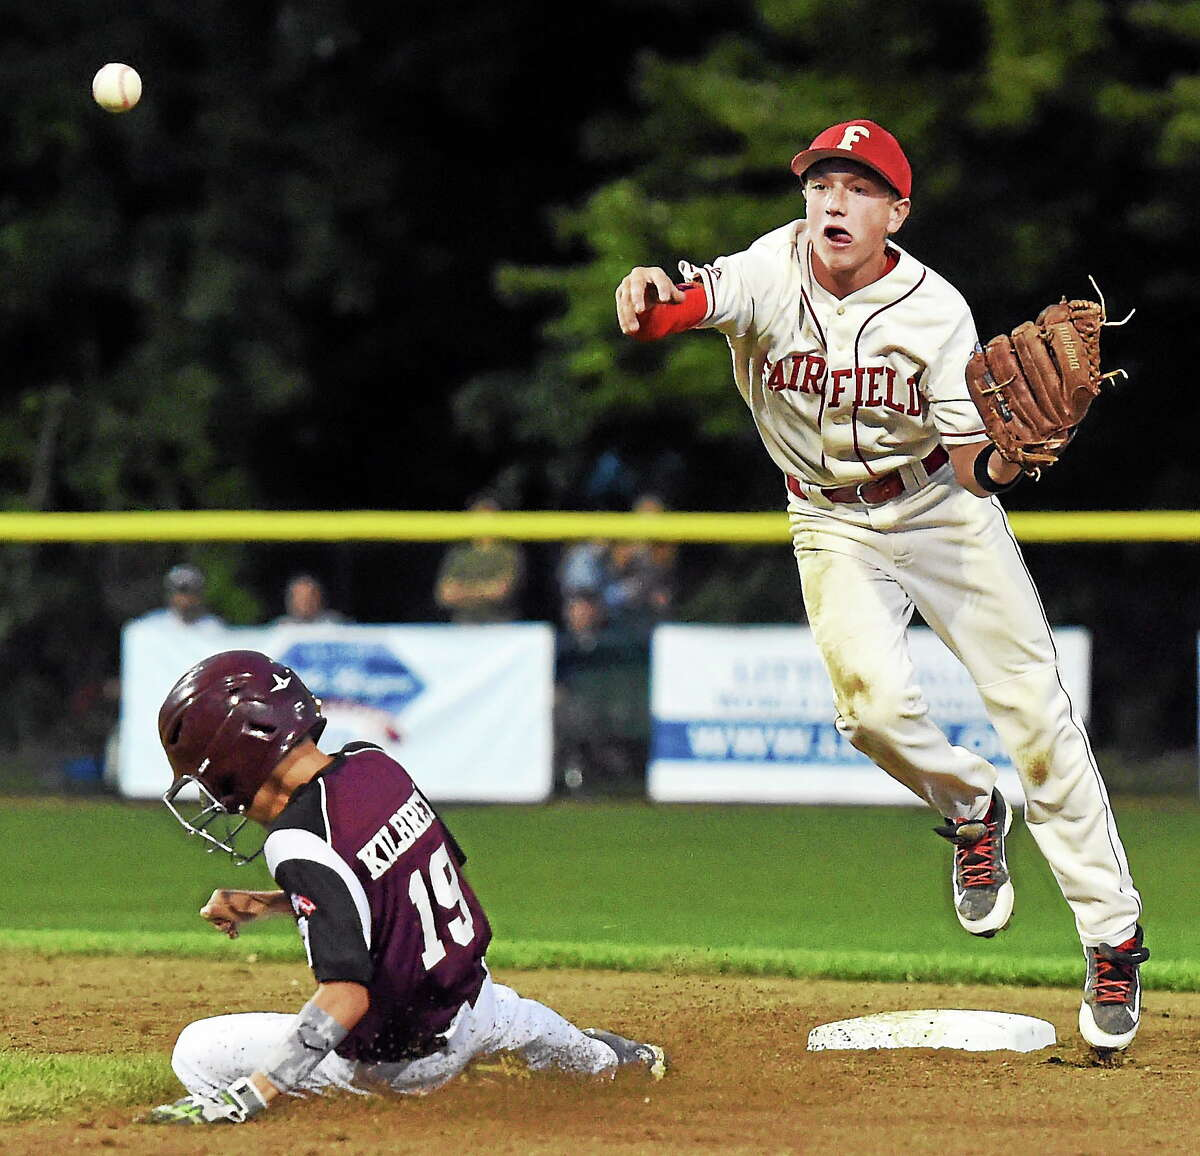 Brian Howell of Fairfield American forces out Liam Kilbreth of Goffstown (New Hampshire) at second base during the second inning Sunday.